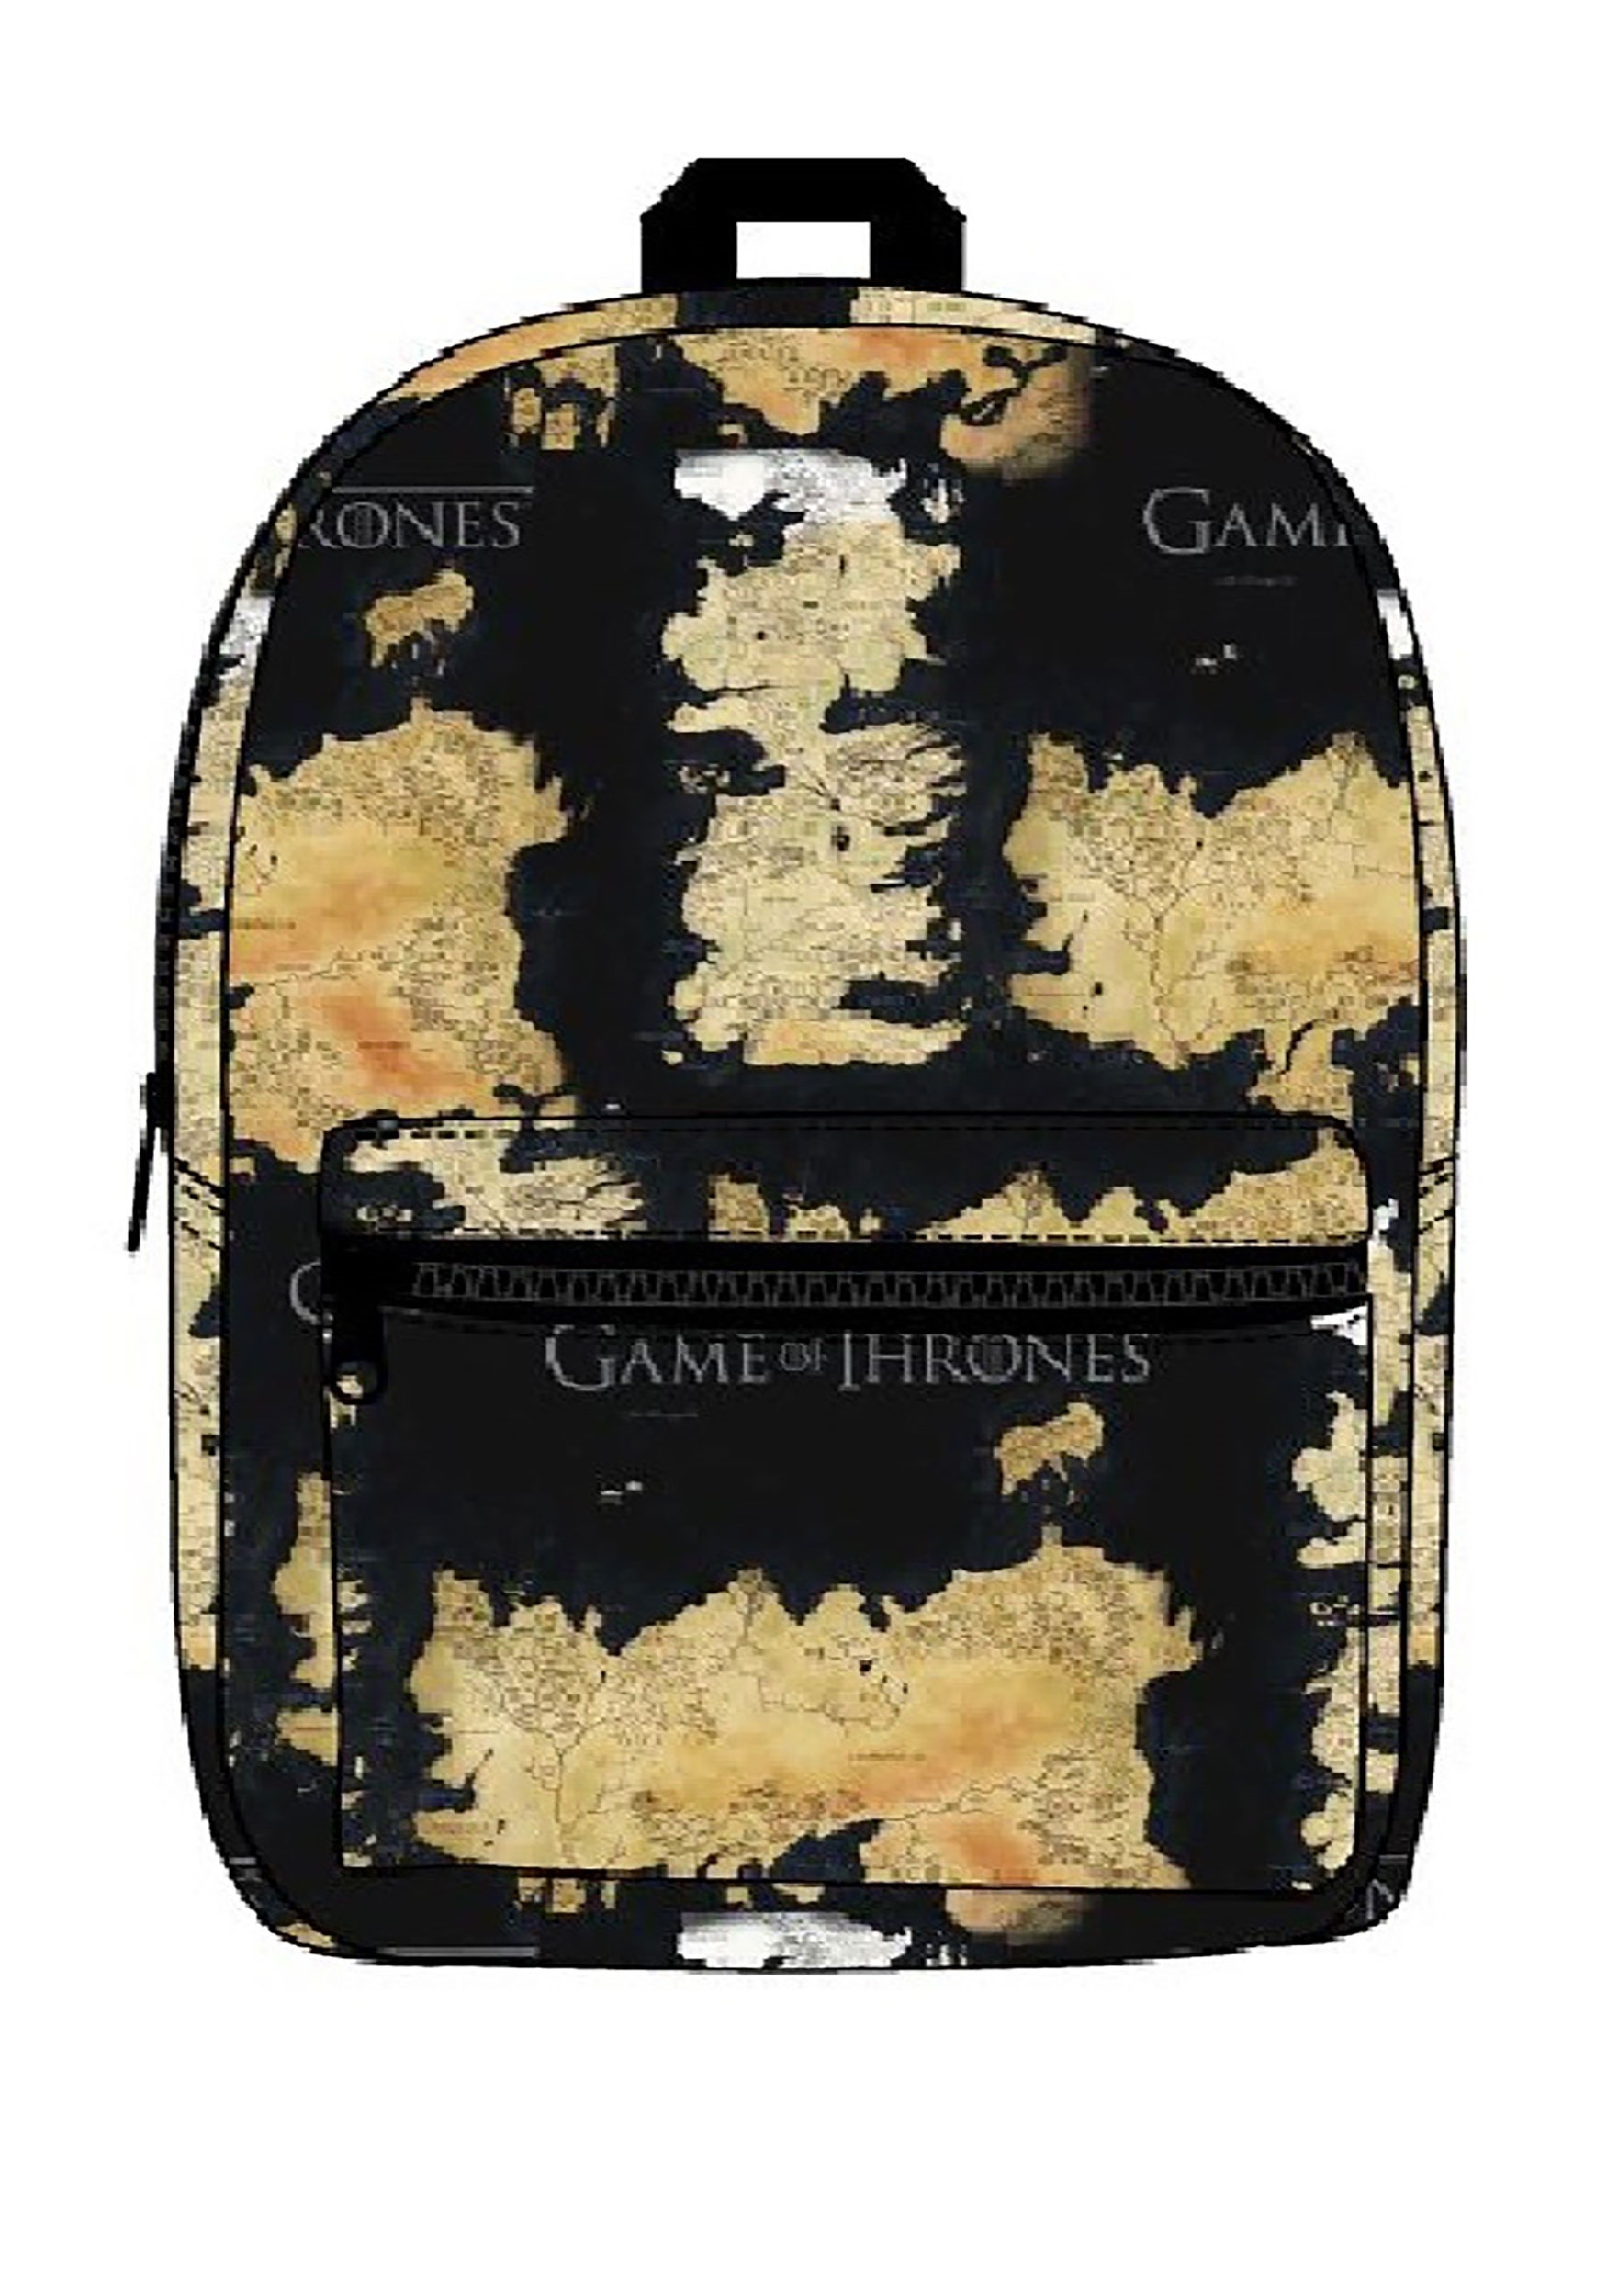 Game of Thrones Westeros and Essos Map Backpack Bag